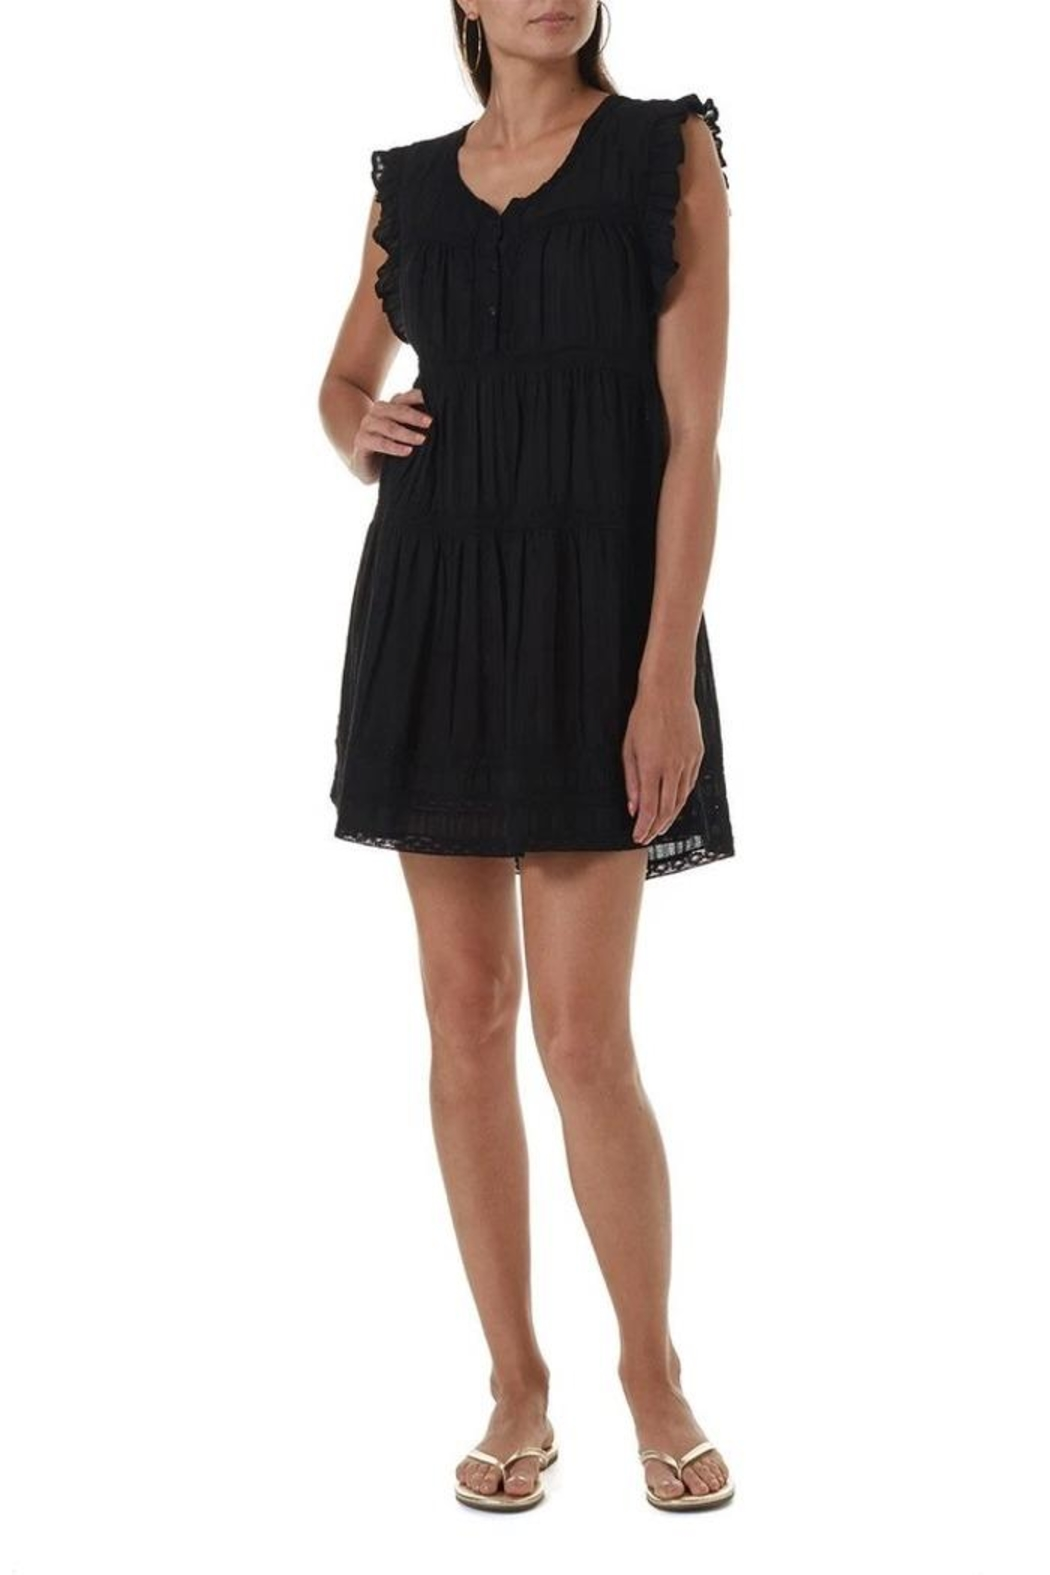 Melissa Odabash Rebekah Short Dress - Front Cropped Image